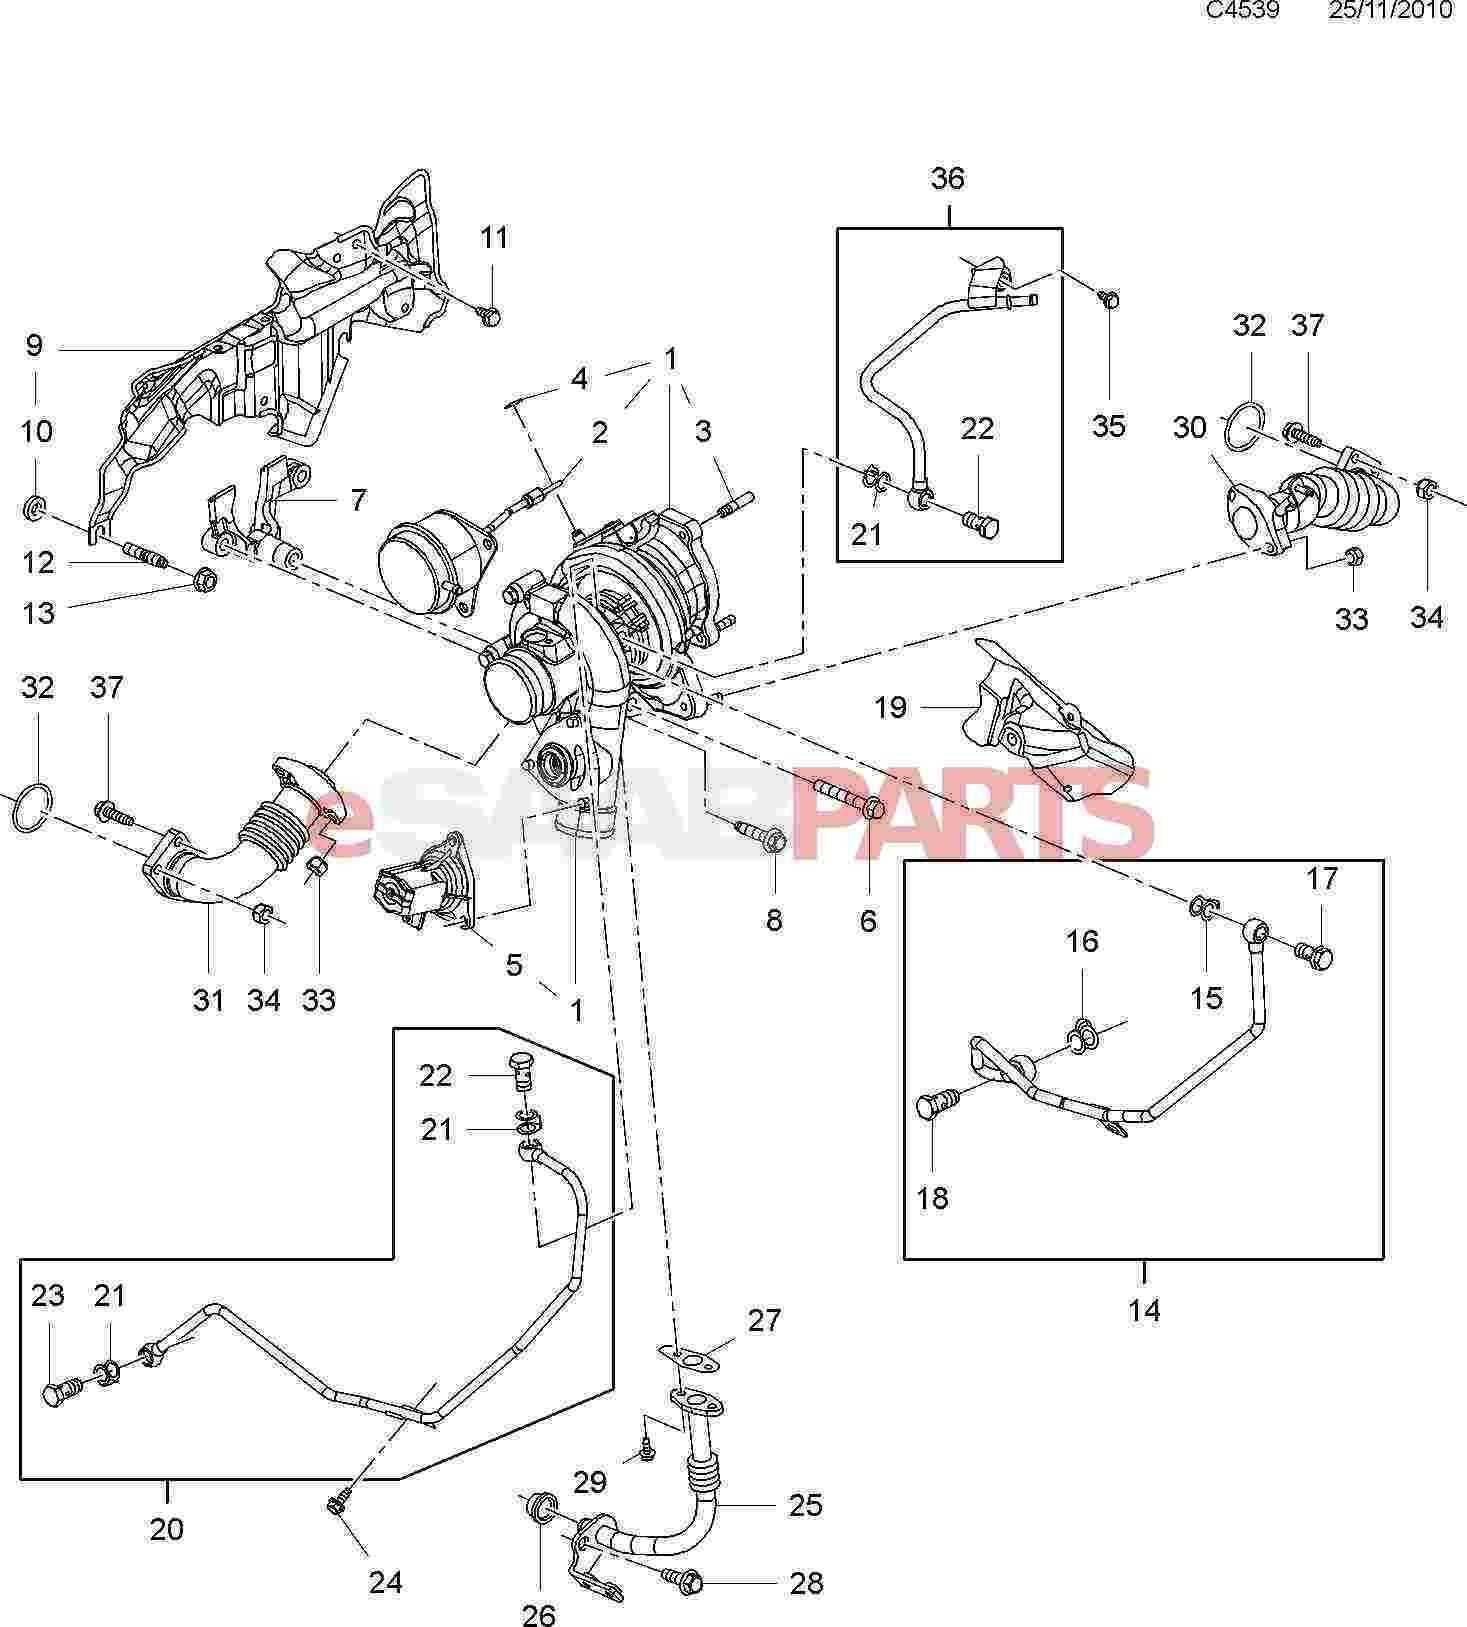 hight resolution of wrg 2570 fuse box saab 9 52000 saab 9 3 fuse box diagram 18